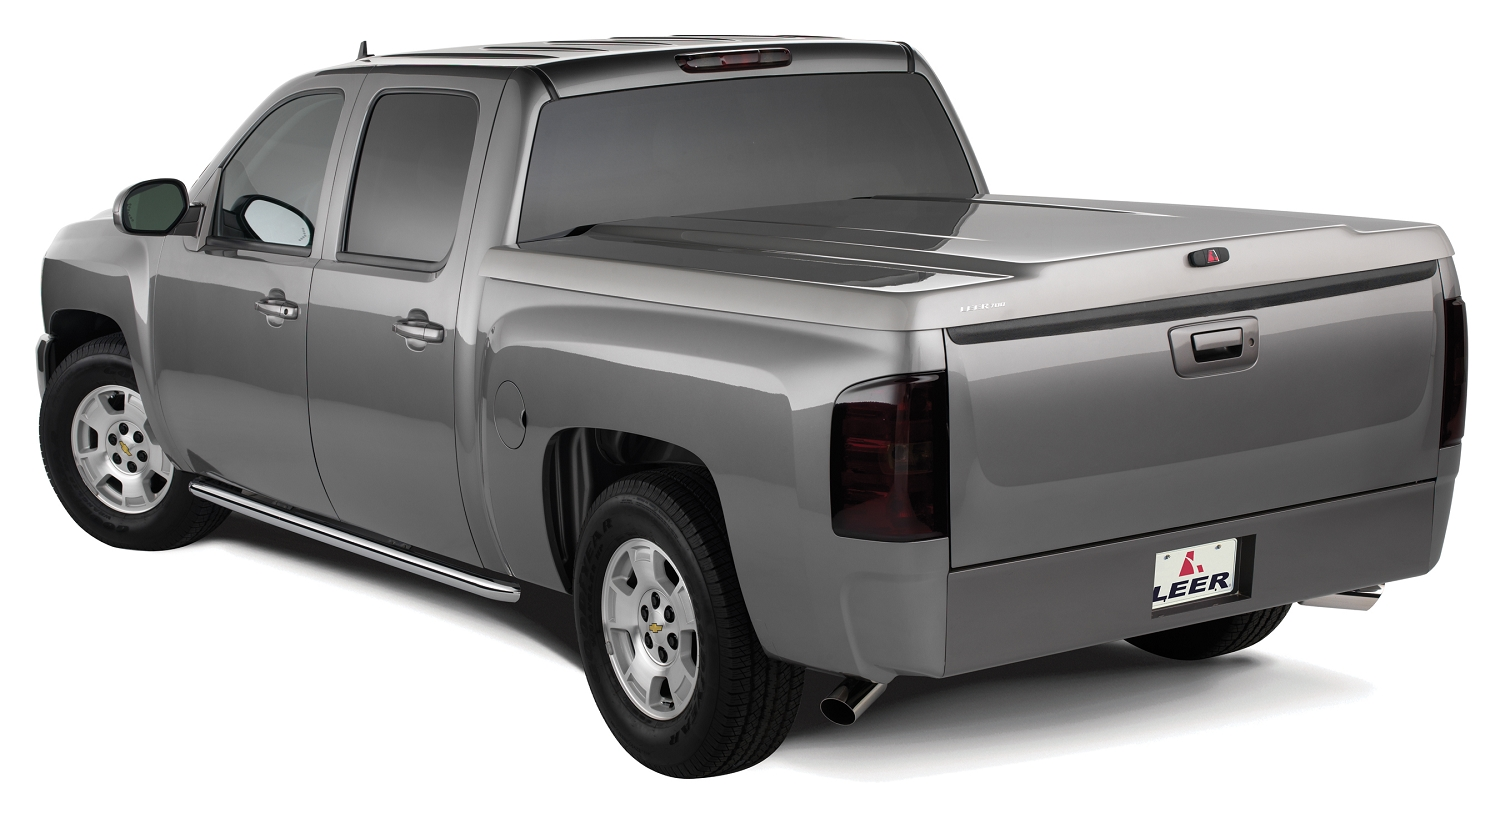 Ram 1500 Bed Cover >> Leer 700 Hard Cover